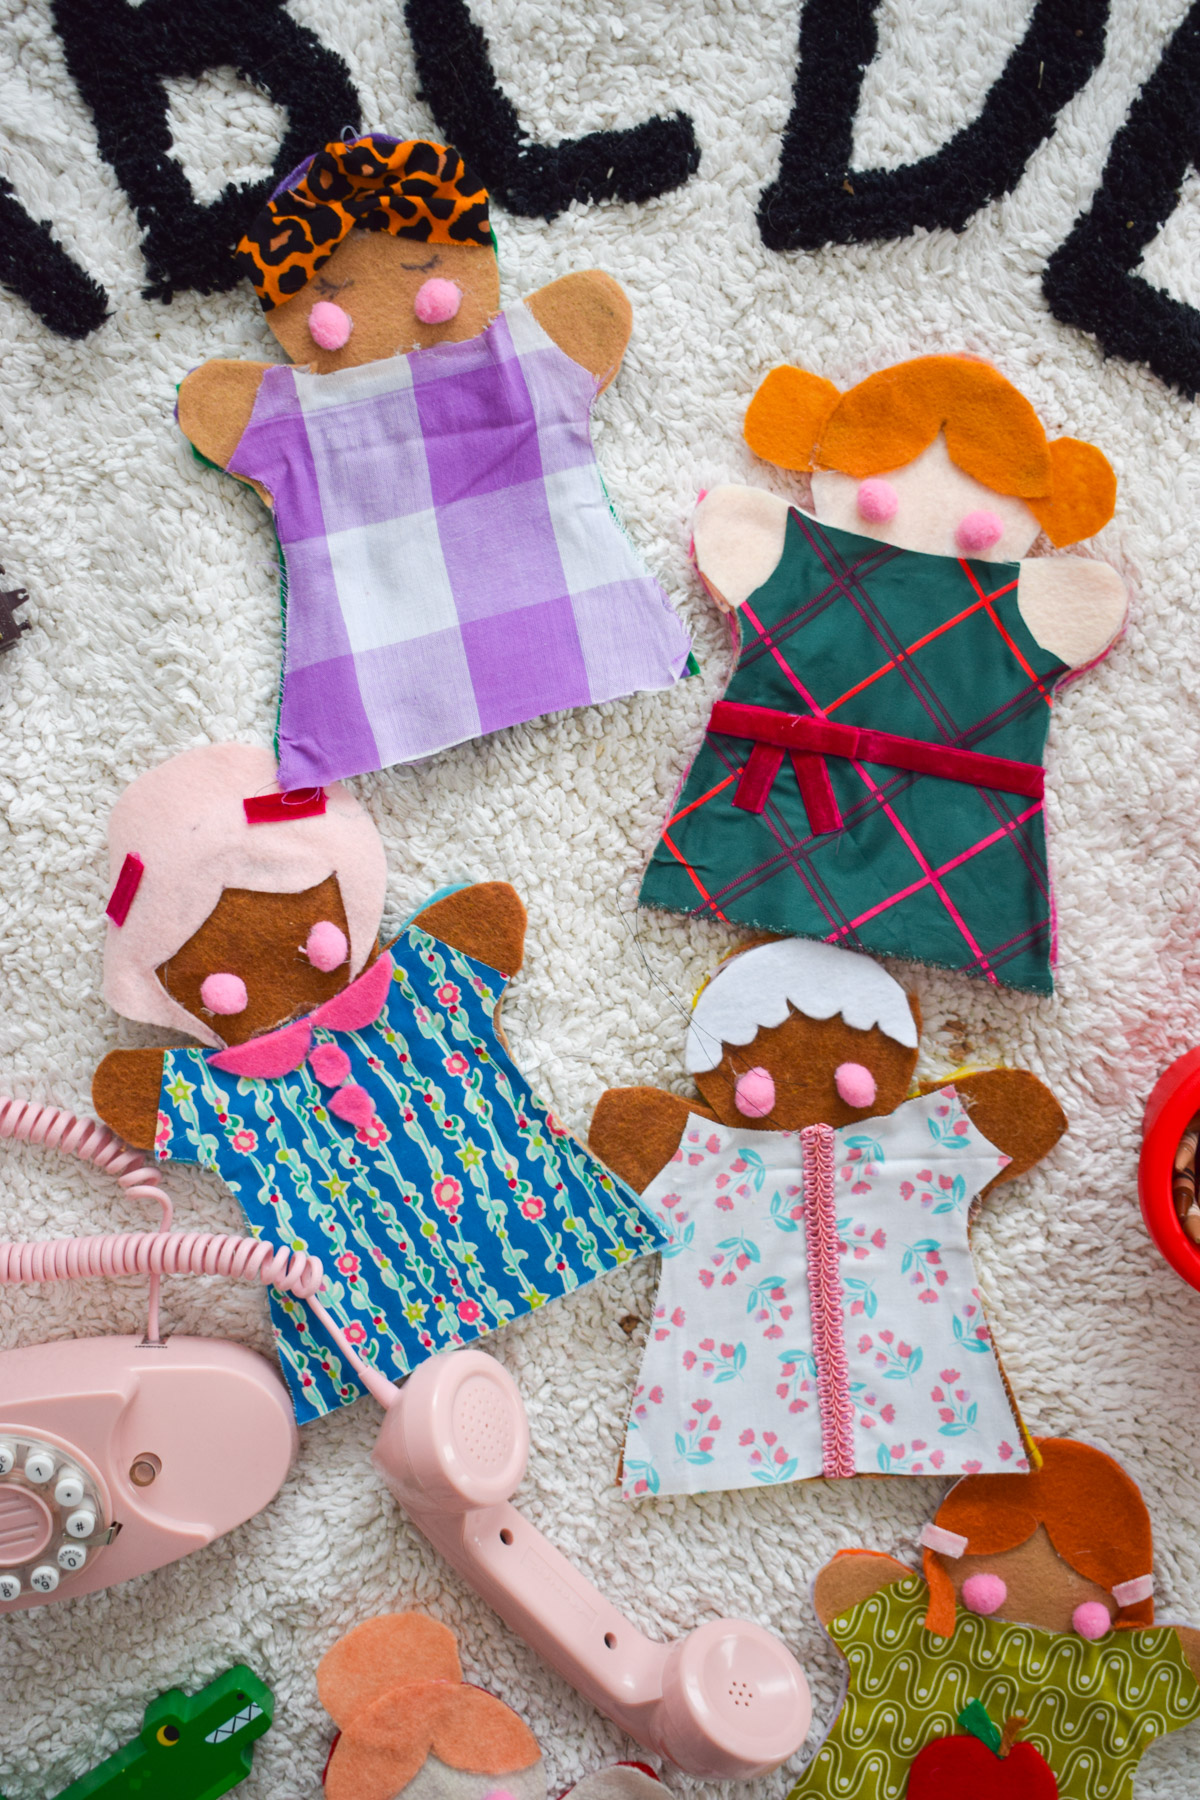 DIY Felt Hand Puppets that are racially inclusive and diverse are our latest Montessori project for June! Come see how I made them.